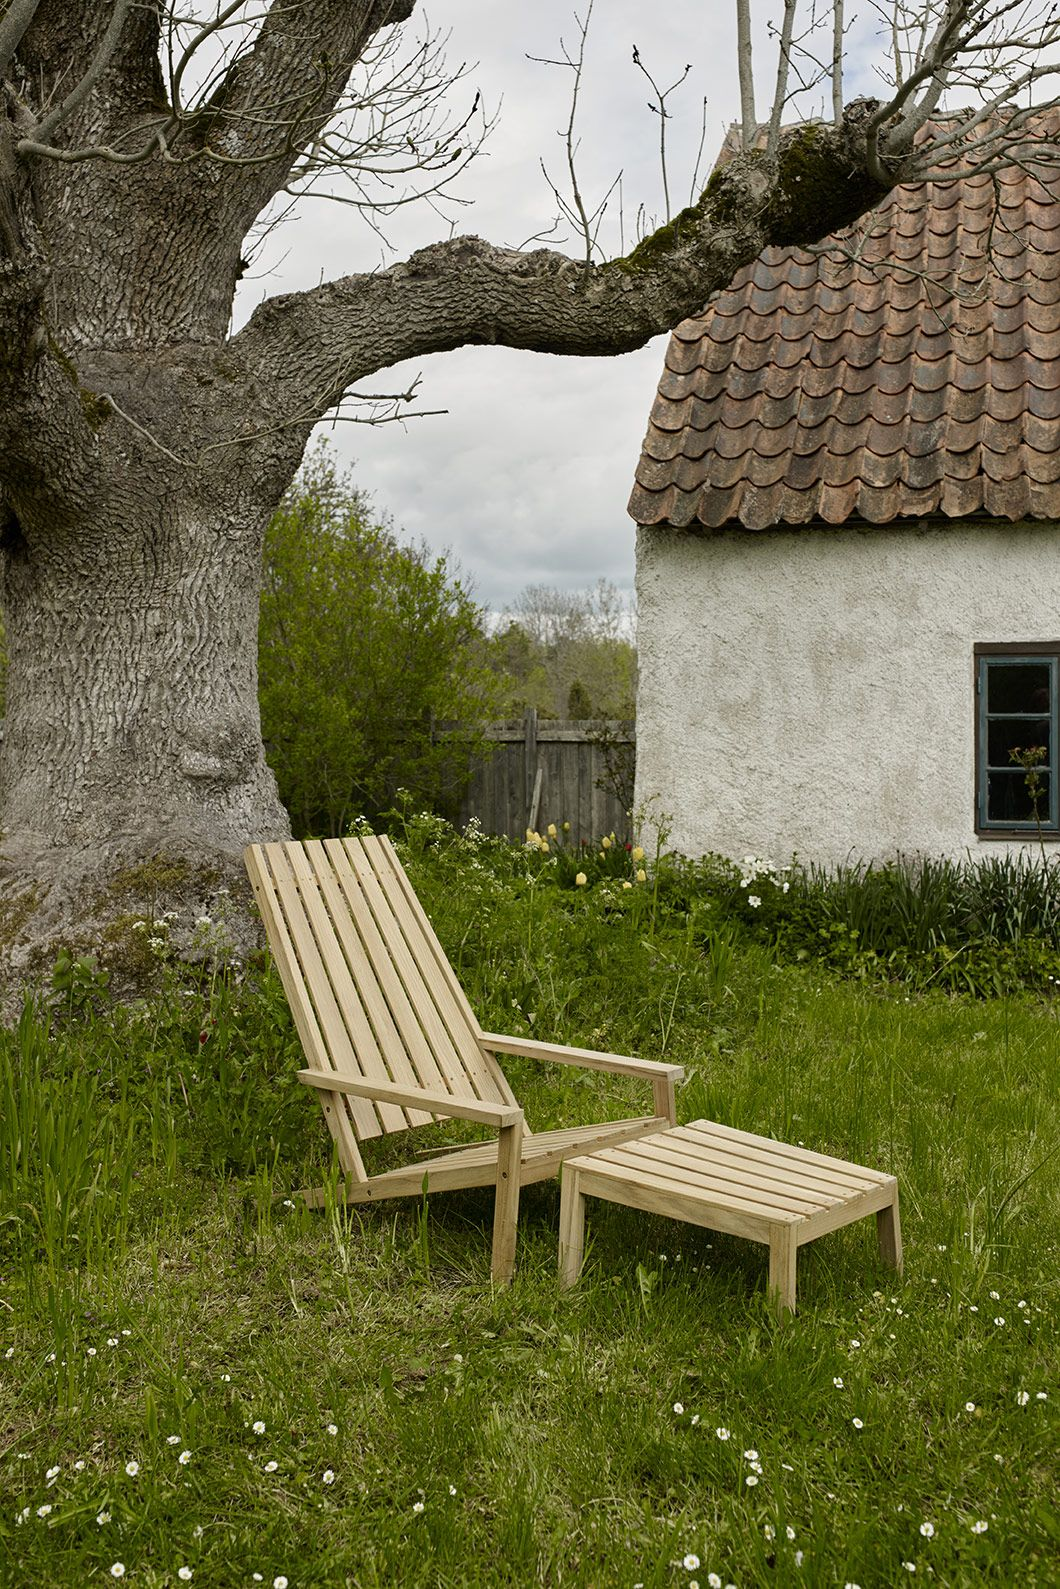 Pin by Nest.co.uk on Nest The Great Outdoors Wooden